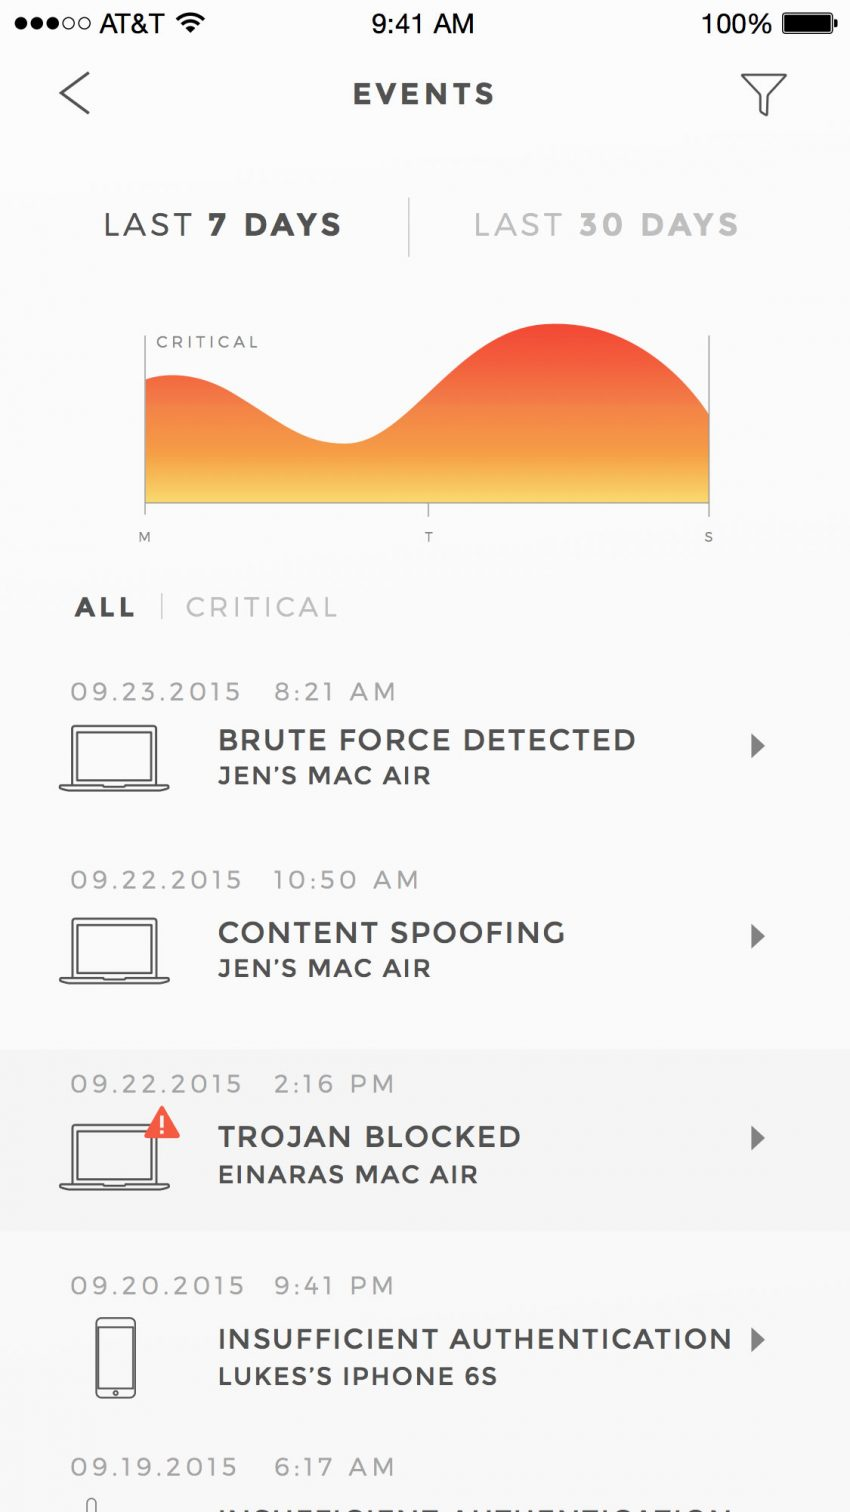 CUJO Smart Internet Security Firewall Protects Your Small Business From Hackers